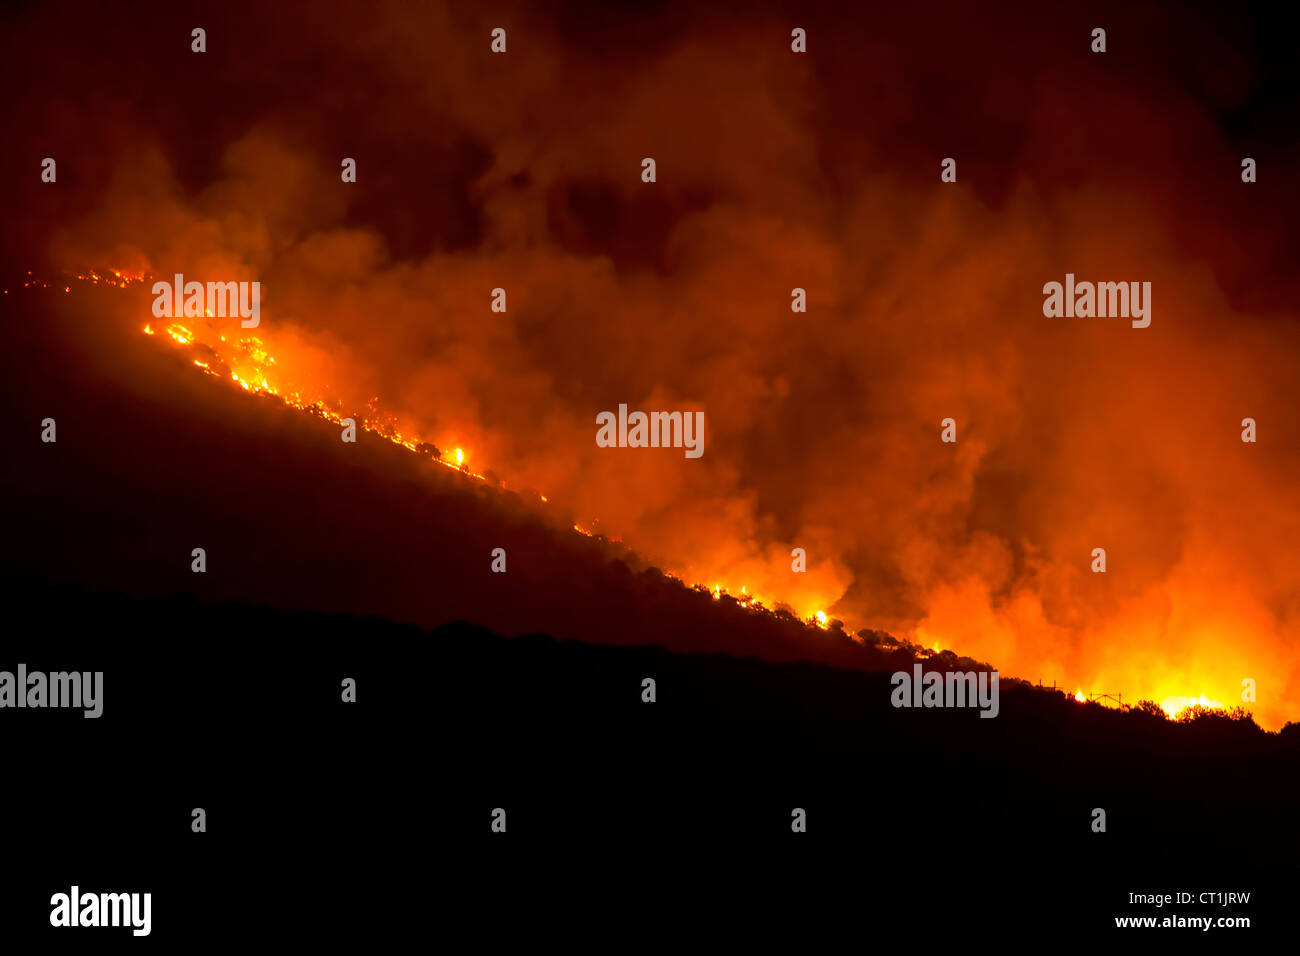 Mountain Forest Fire at night destroys thousands of acres Near Fountain Green in Utah, causing intense raging flames Stock Photo